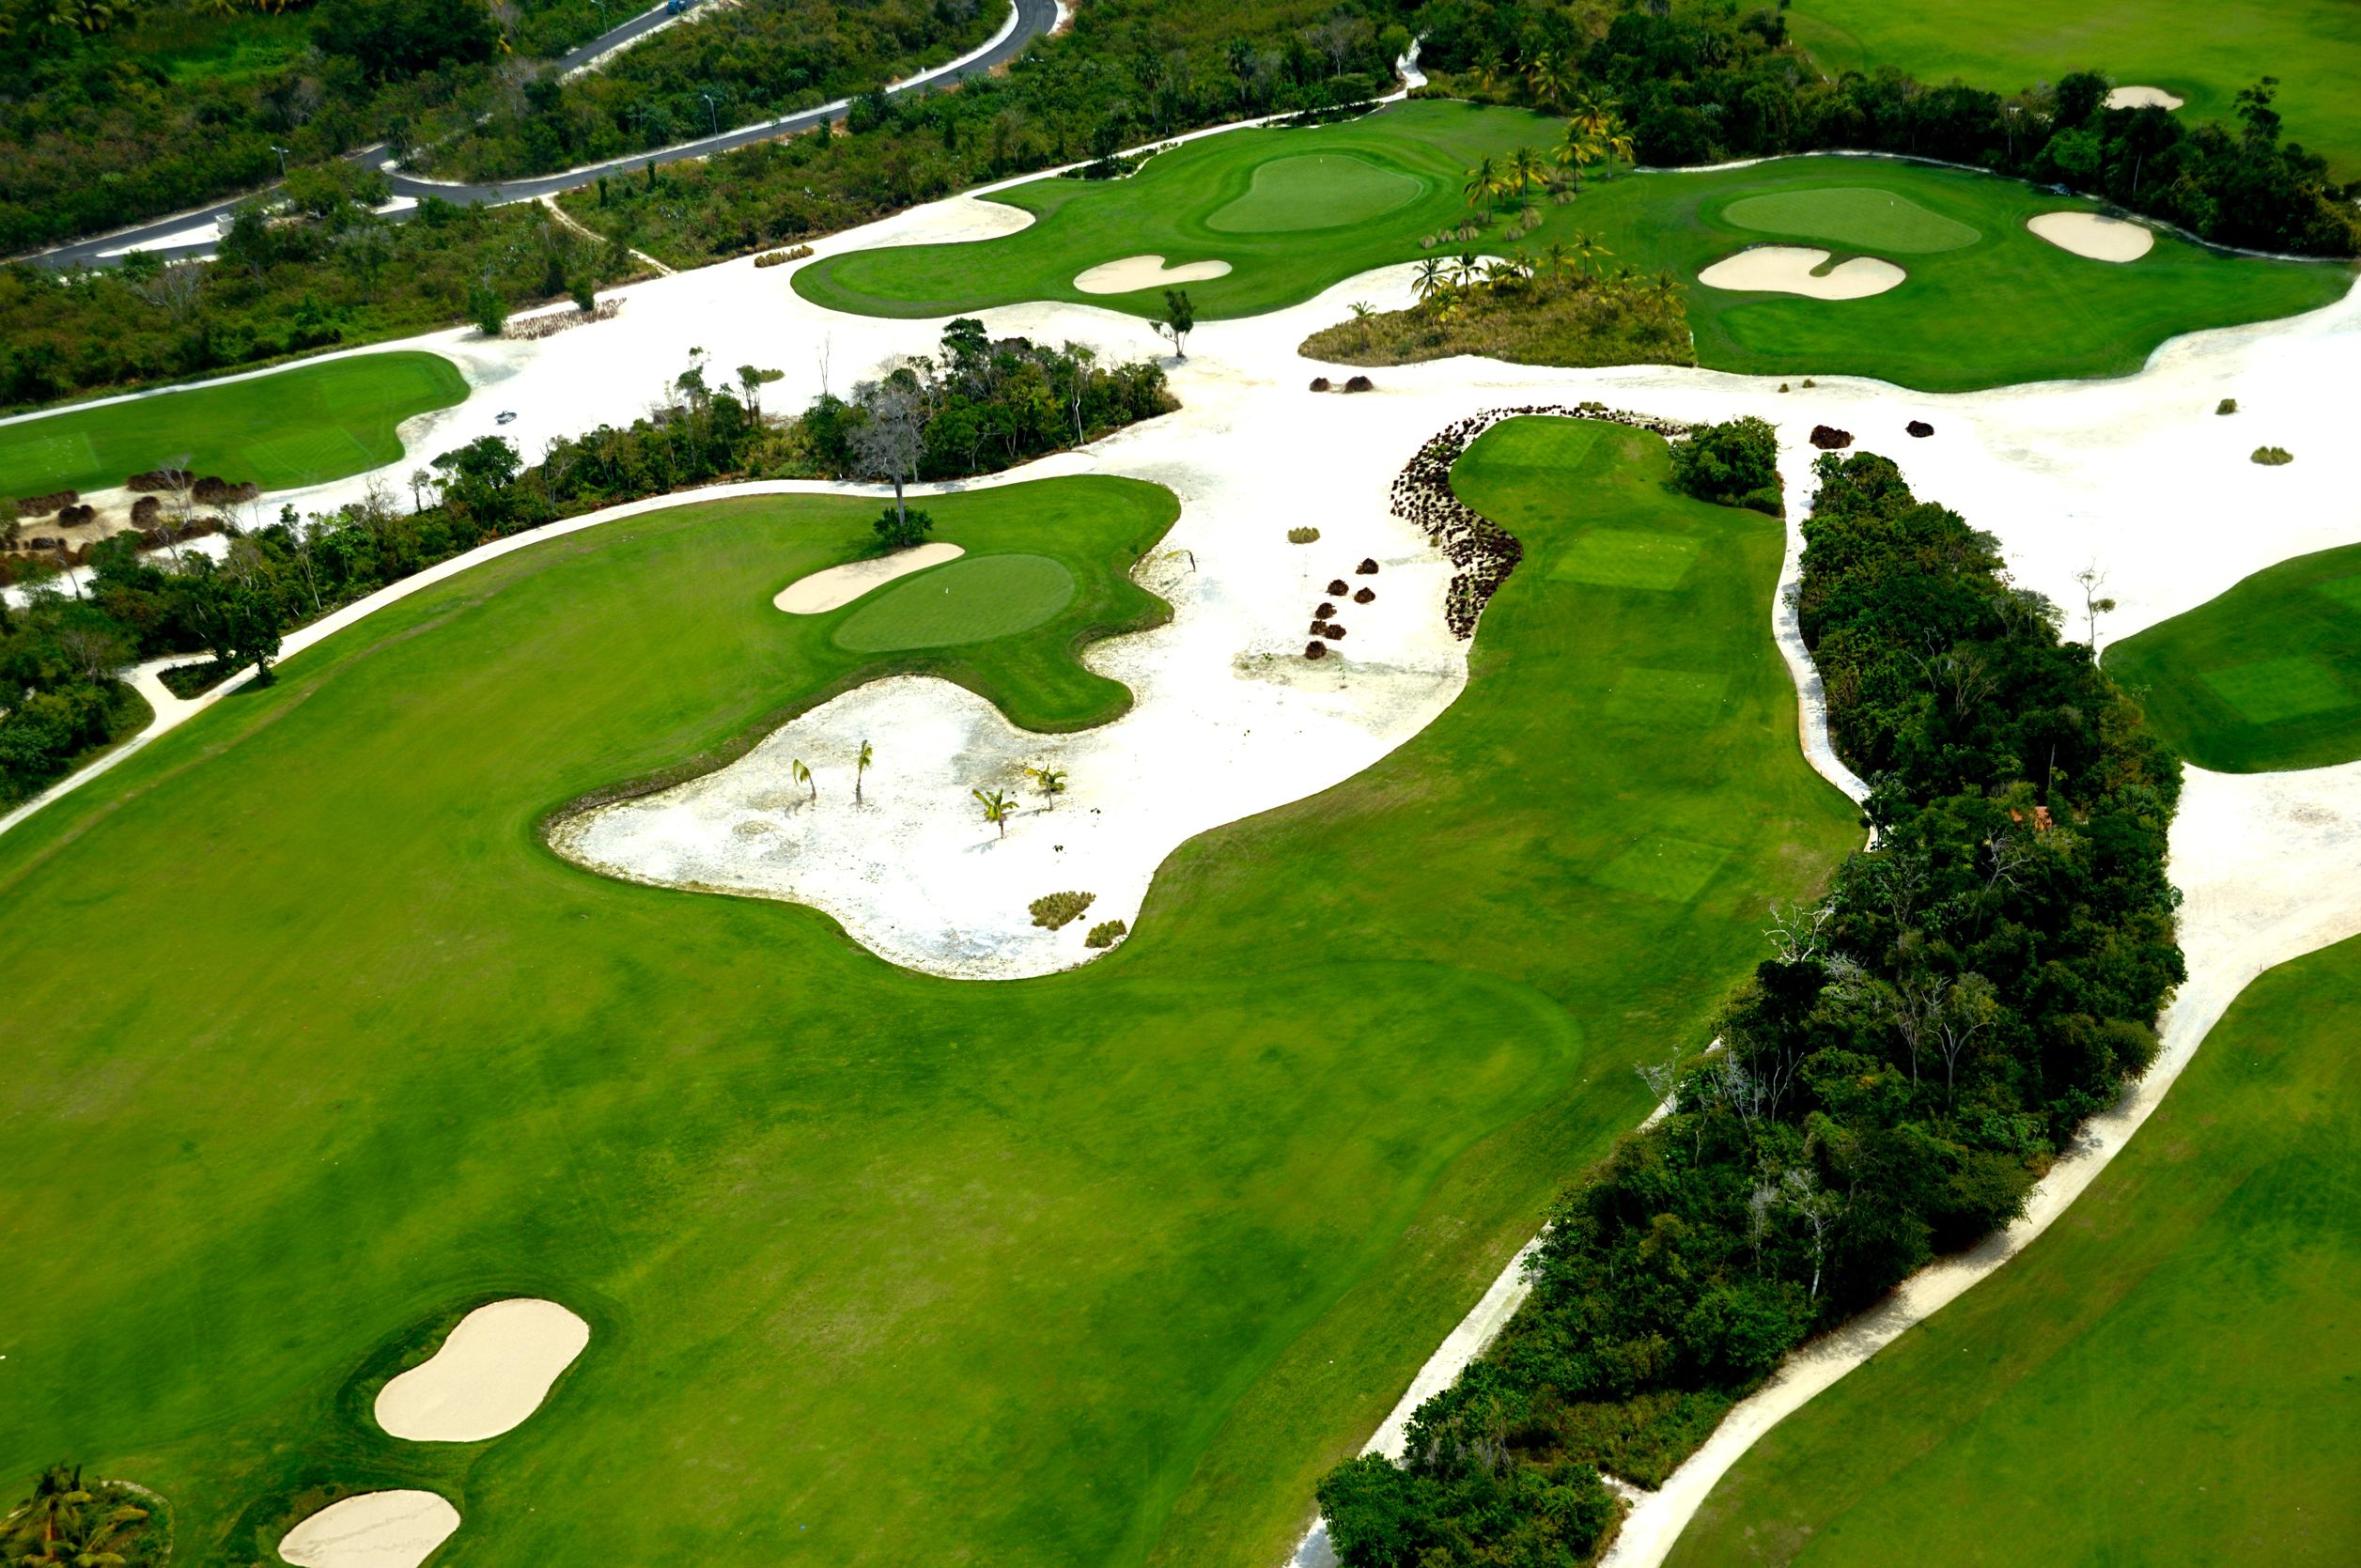 caribbean golf course 123rf